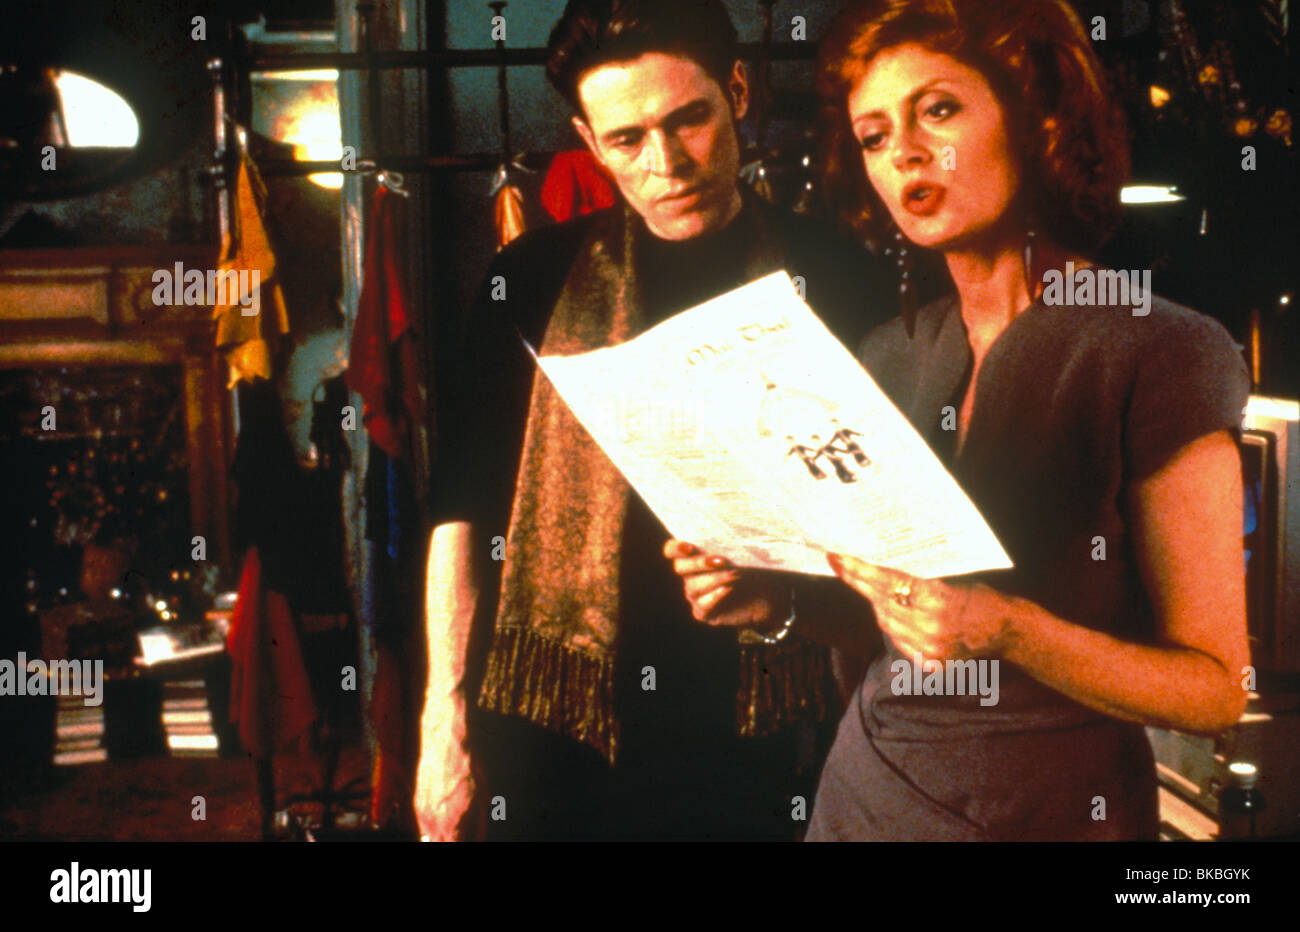 LIGHT SLEEPER (1992) WILLEM DAFOE, SUSAN SARANDON LSR 001 - Stock Image